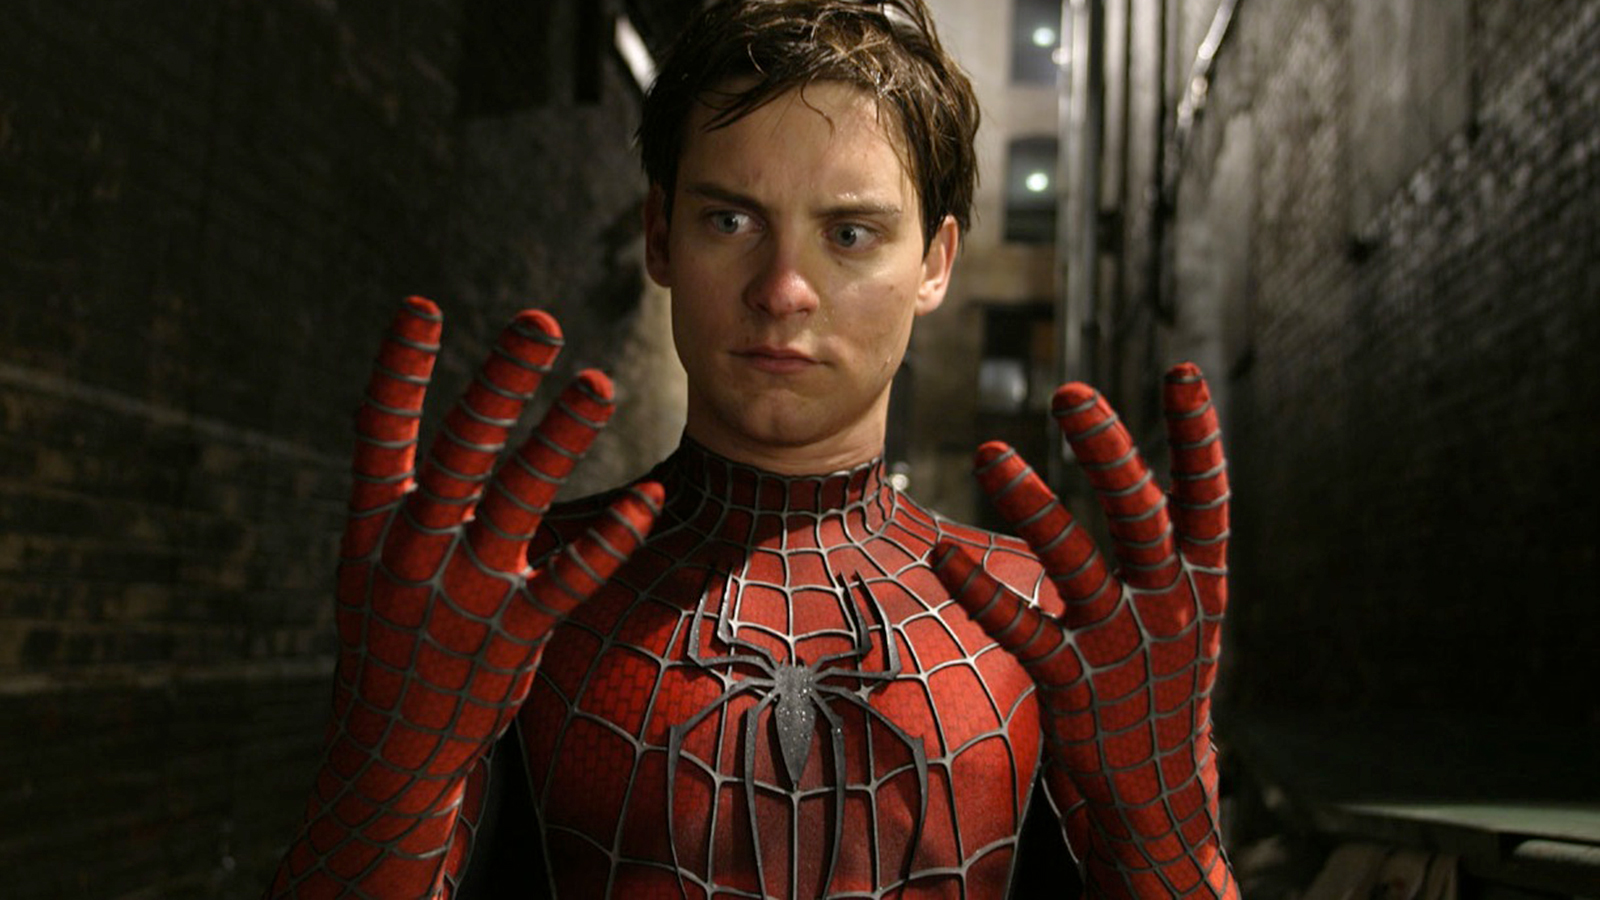 Toby Maguire in Spider-Man